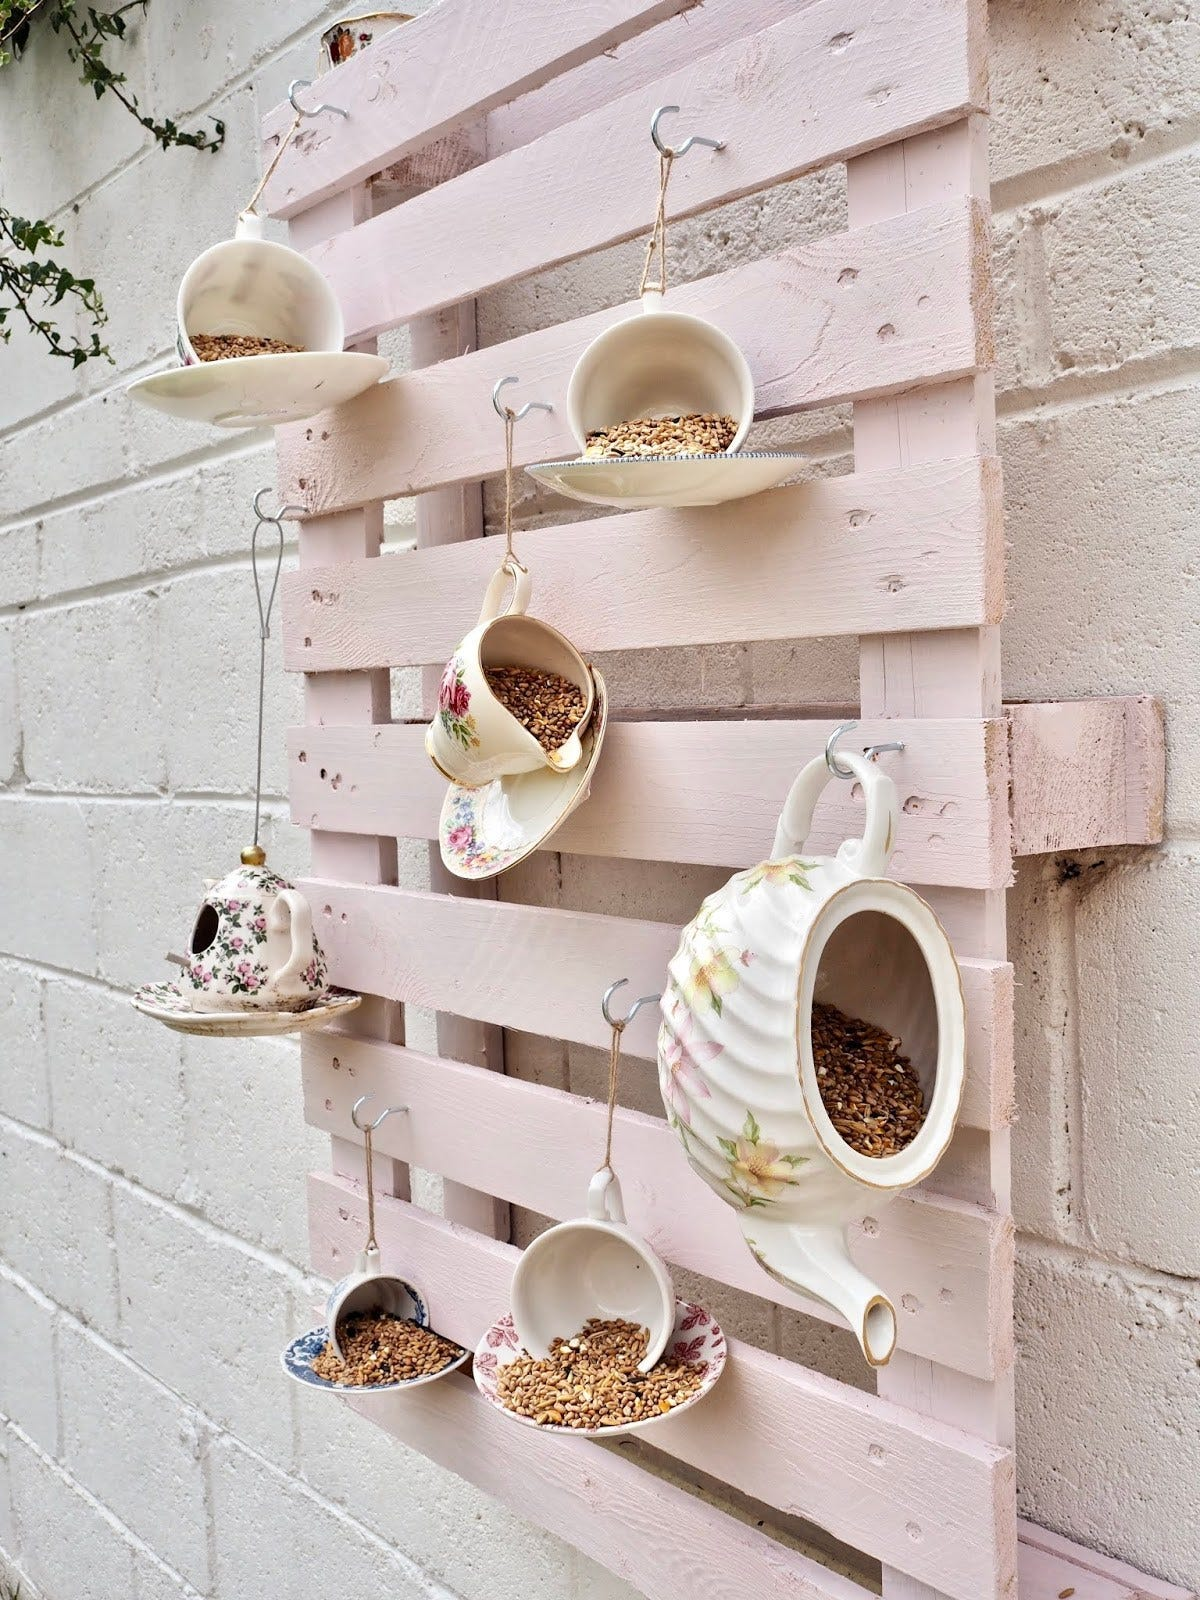 Top 10 Upcycling Ideas